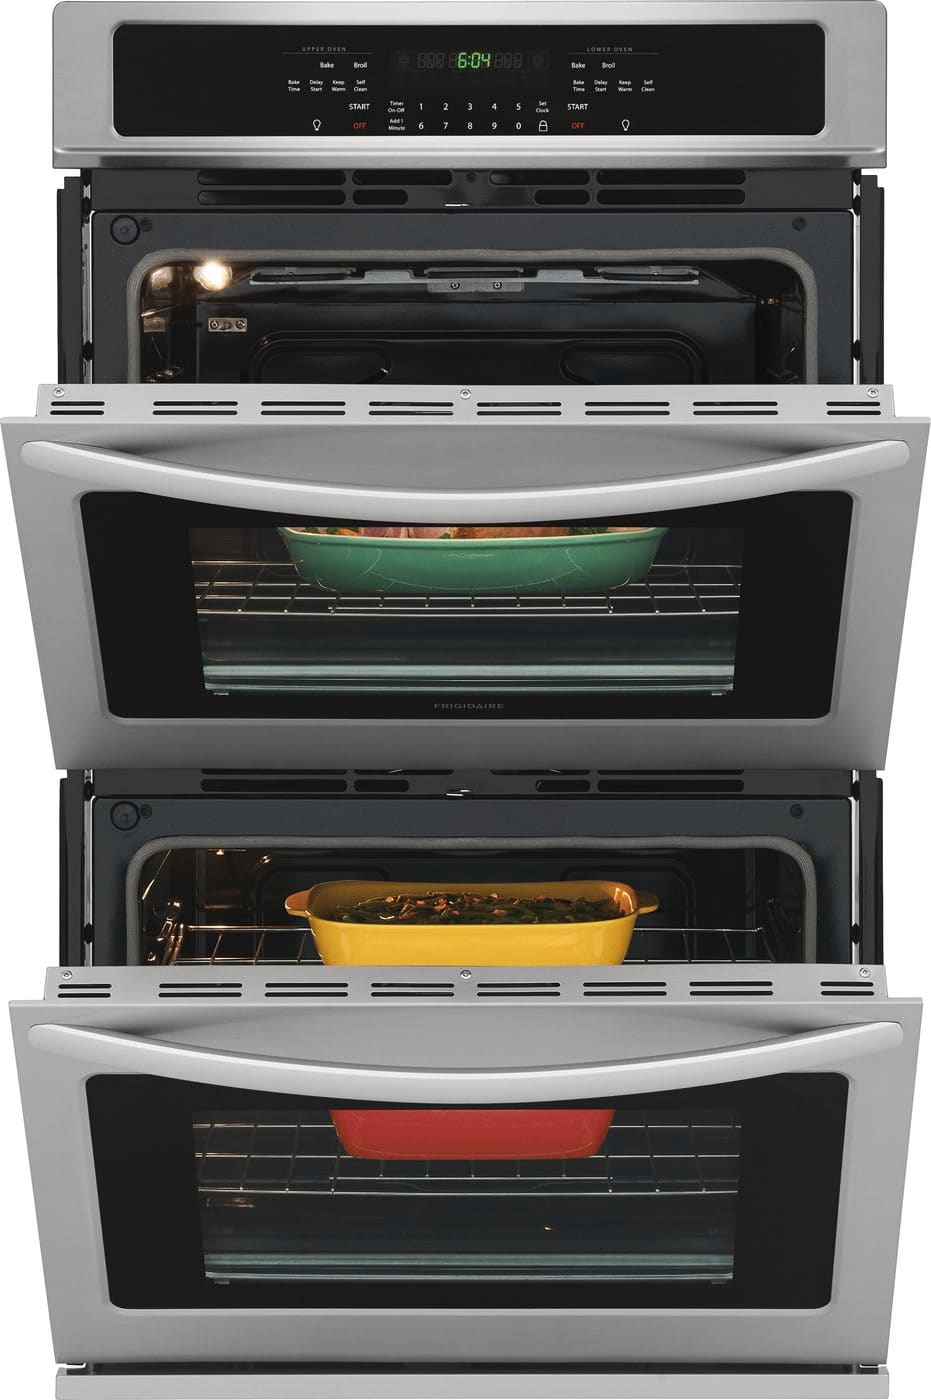 "Model: FFET3026TS | Frigidaire 30"" Double Electric Wall Oven"